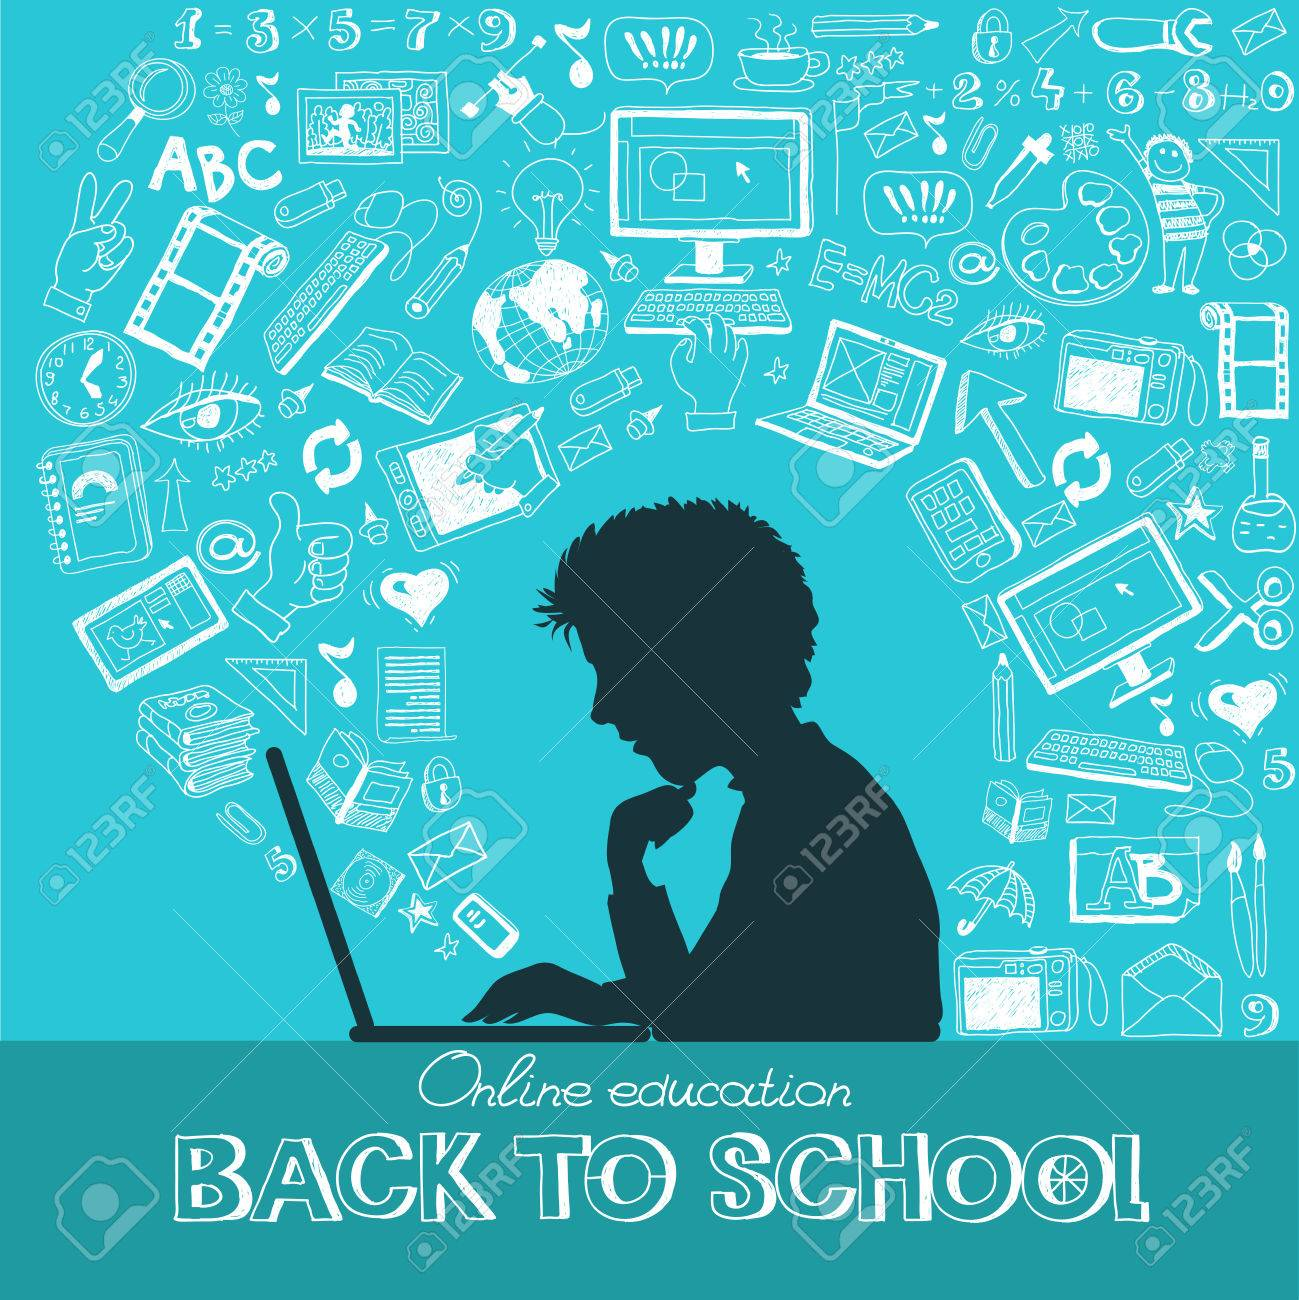 Back to school - doodle set, colored icons flat. - 46202919